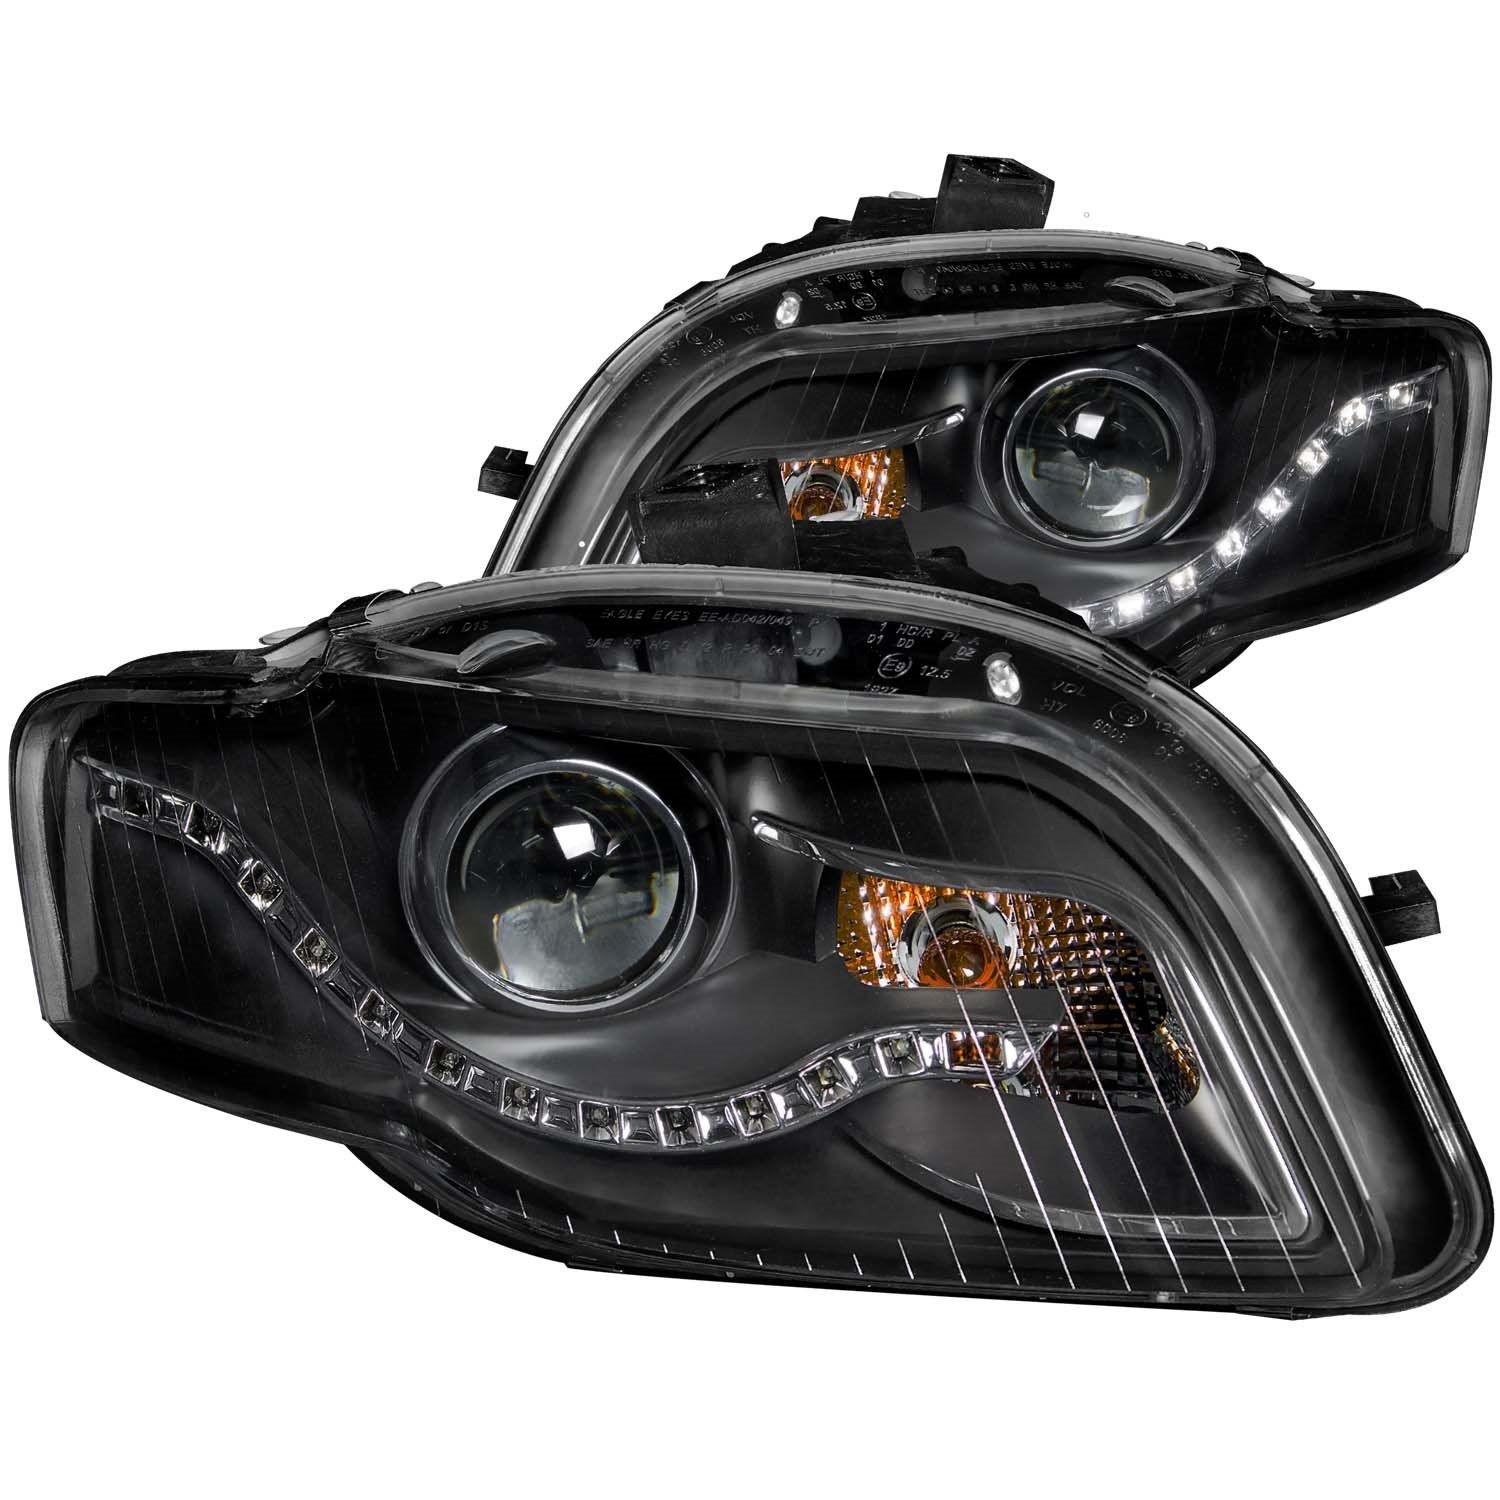 71ug%2BL0O3HL._SL1500_ amazon com 2006 2008 audi a4 projector xenon type headlights 8  at readyjetset.co